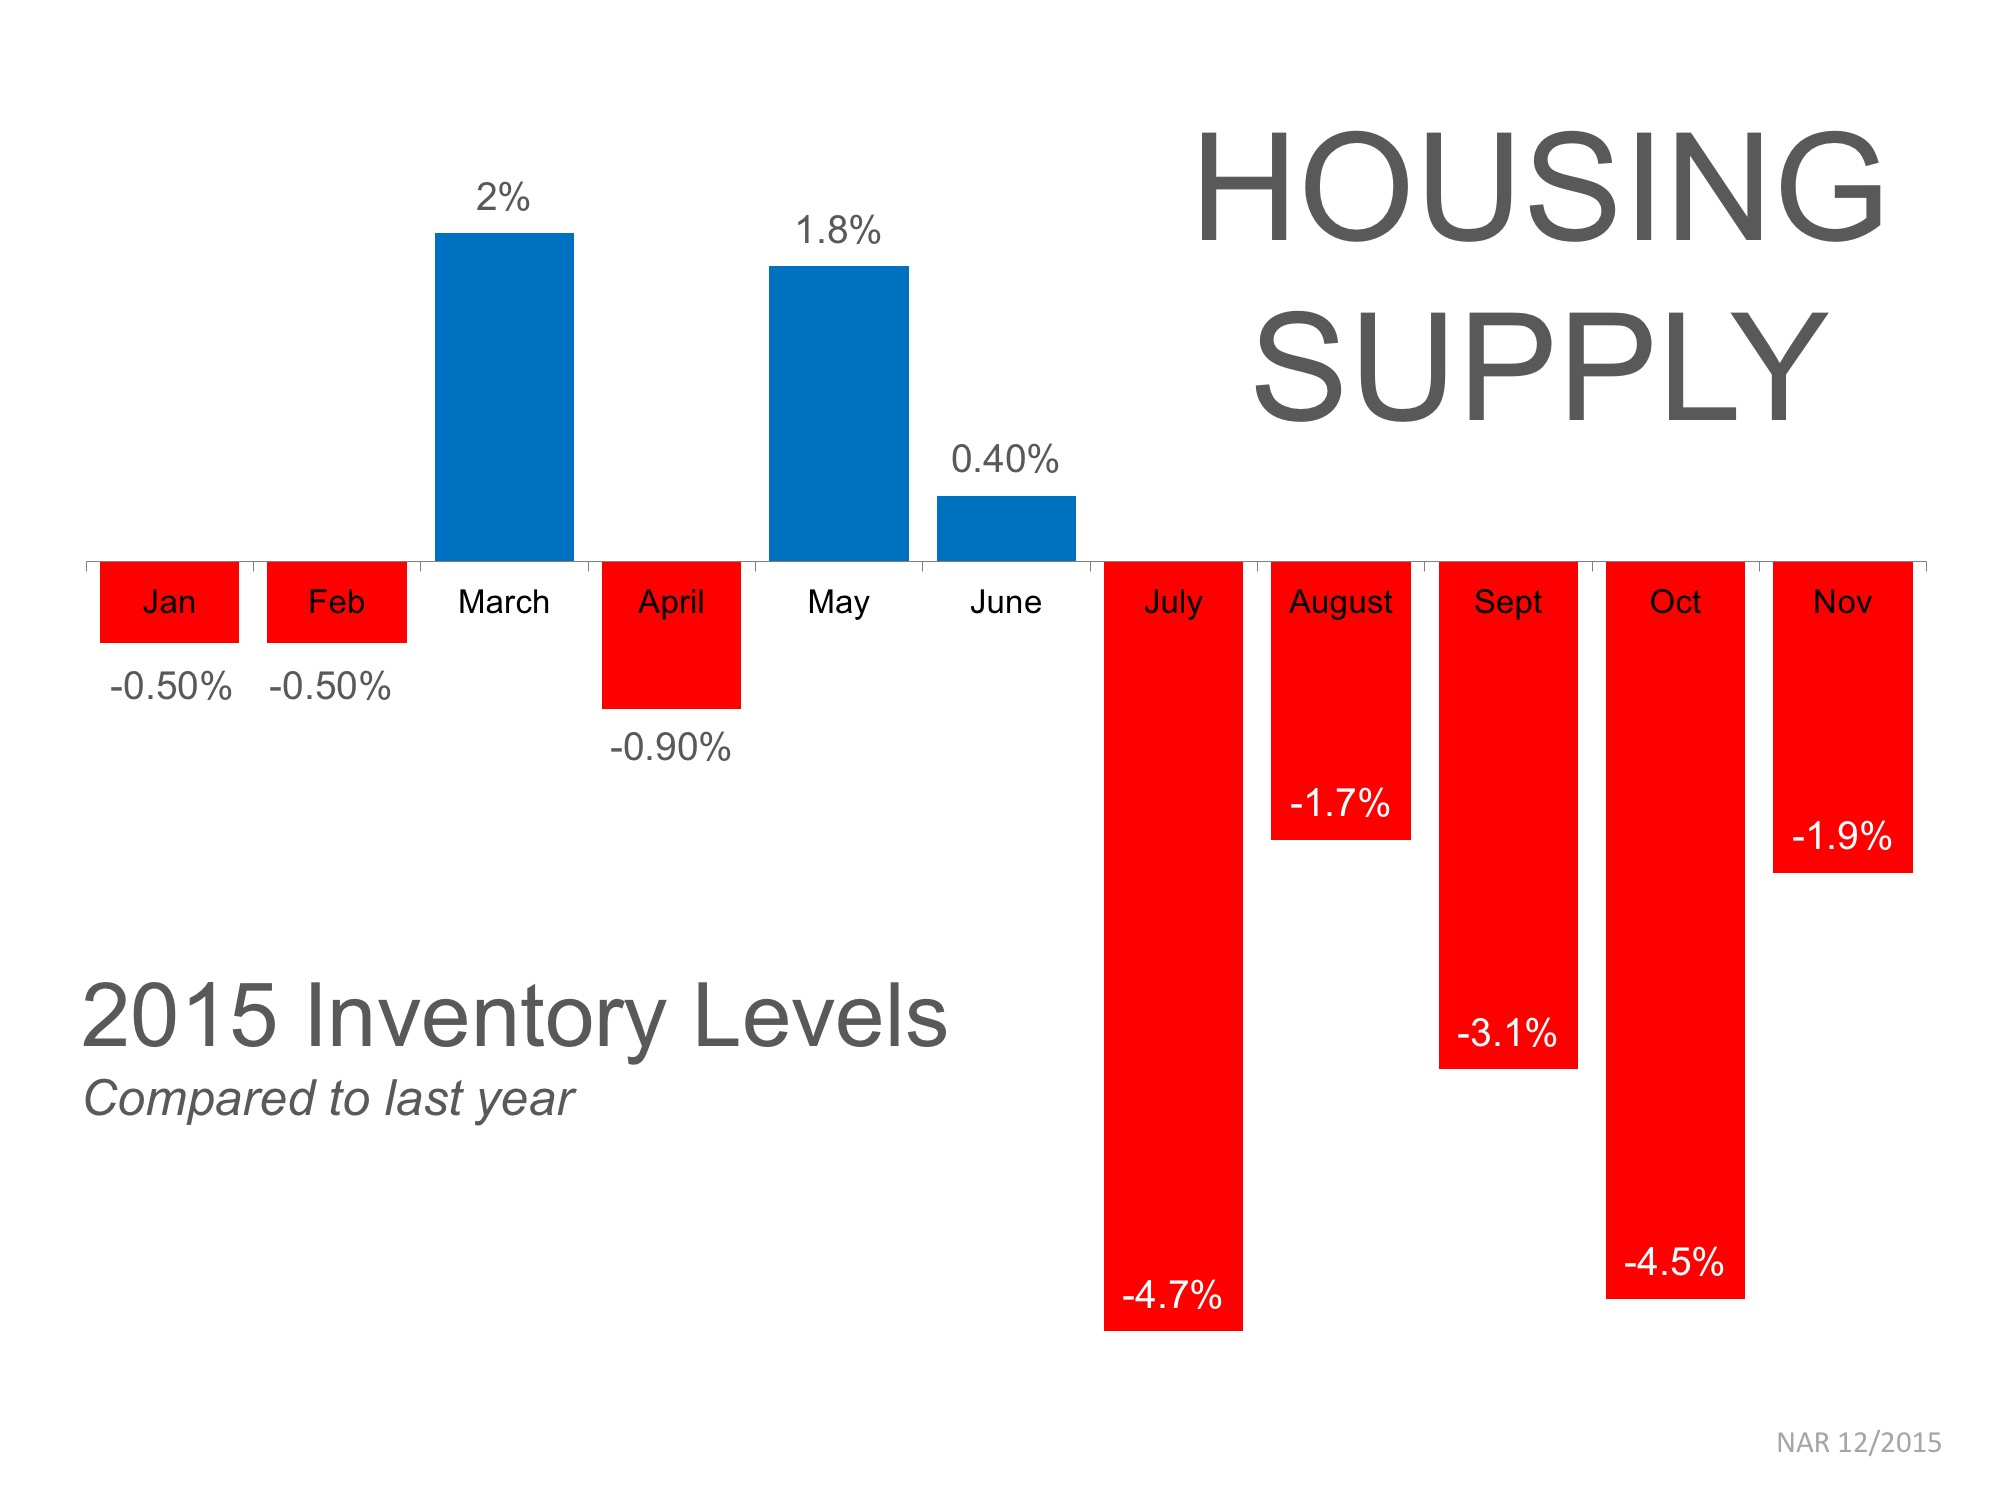 Housing Supply Year-Over-Year | Simplifying The Market